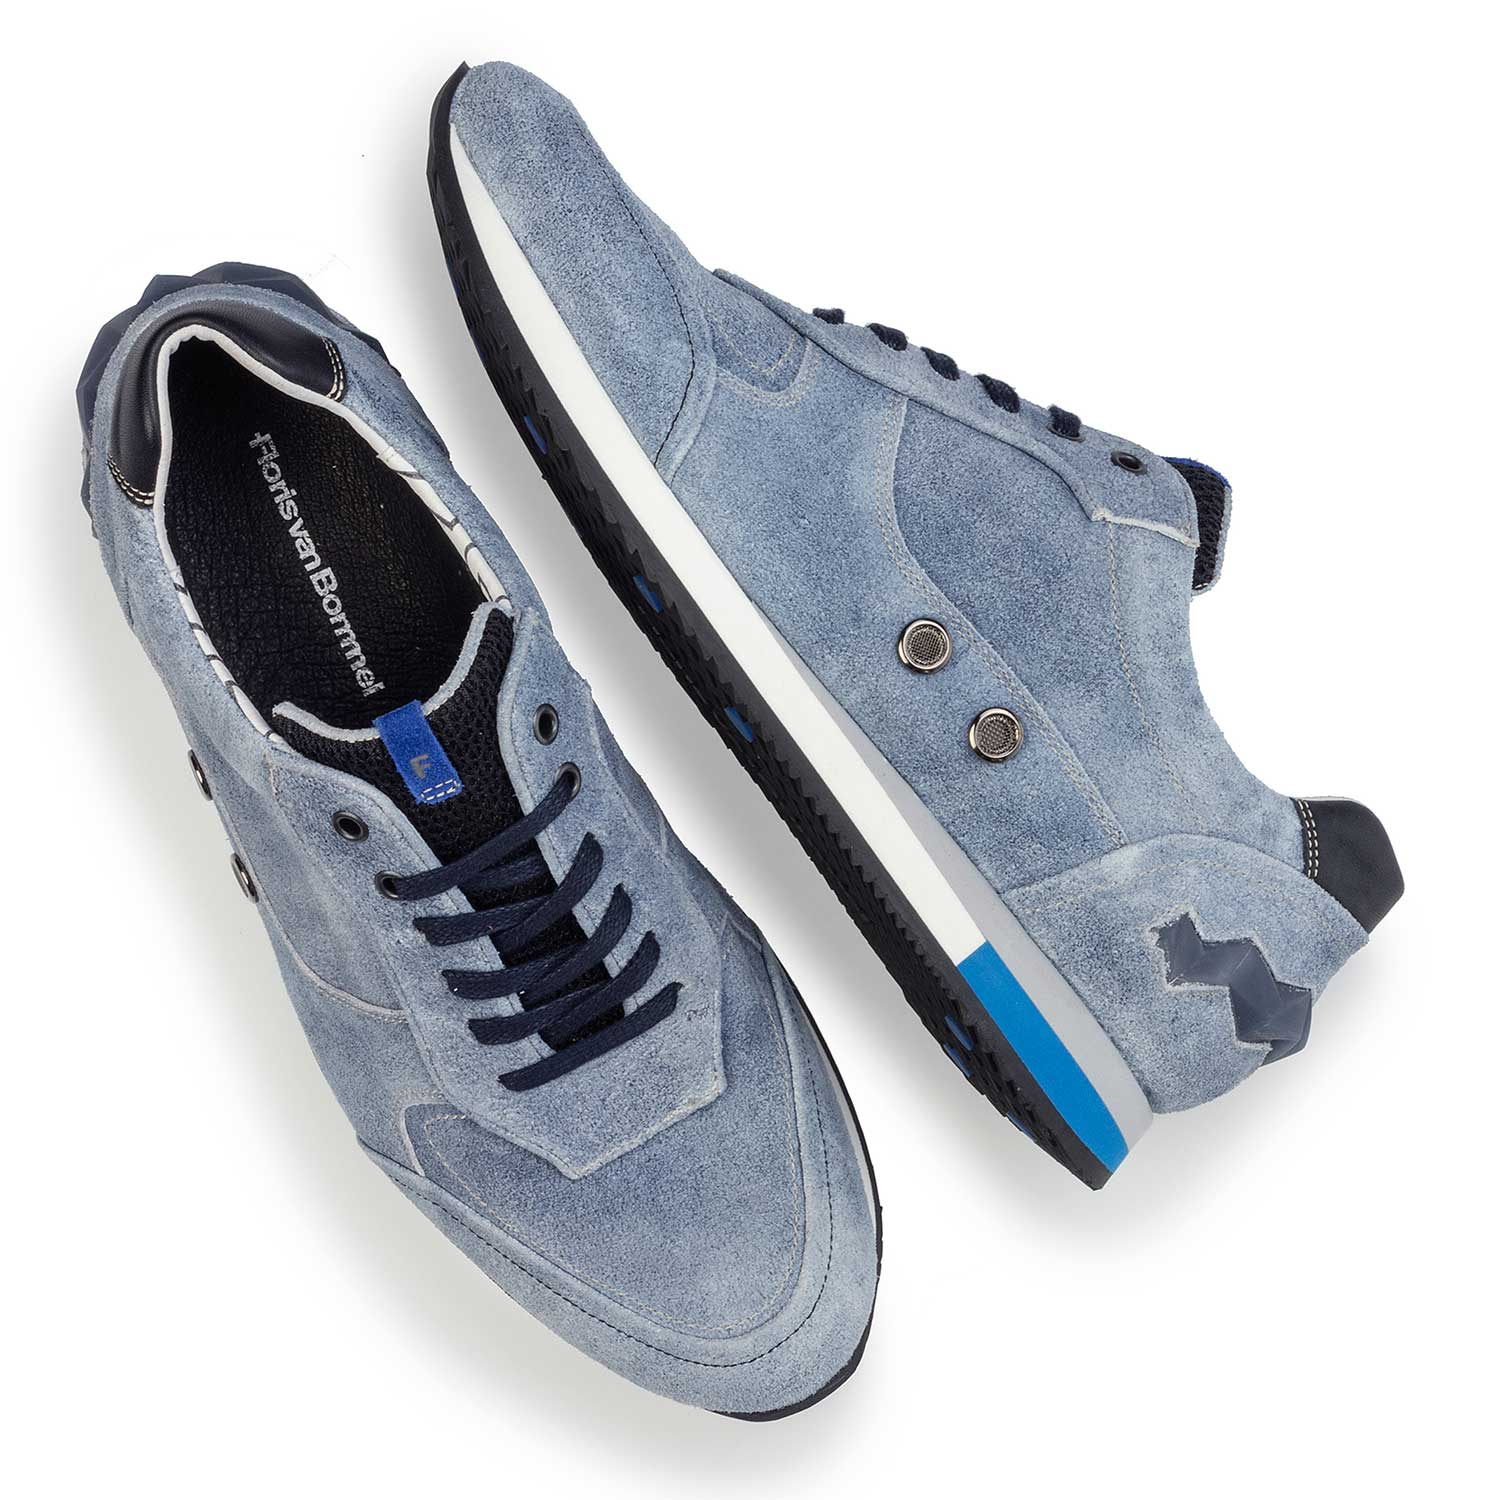 16223/00 - Light blue suede leather sneaker